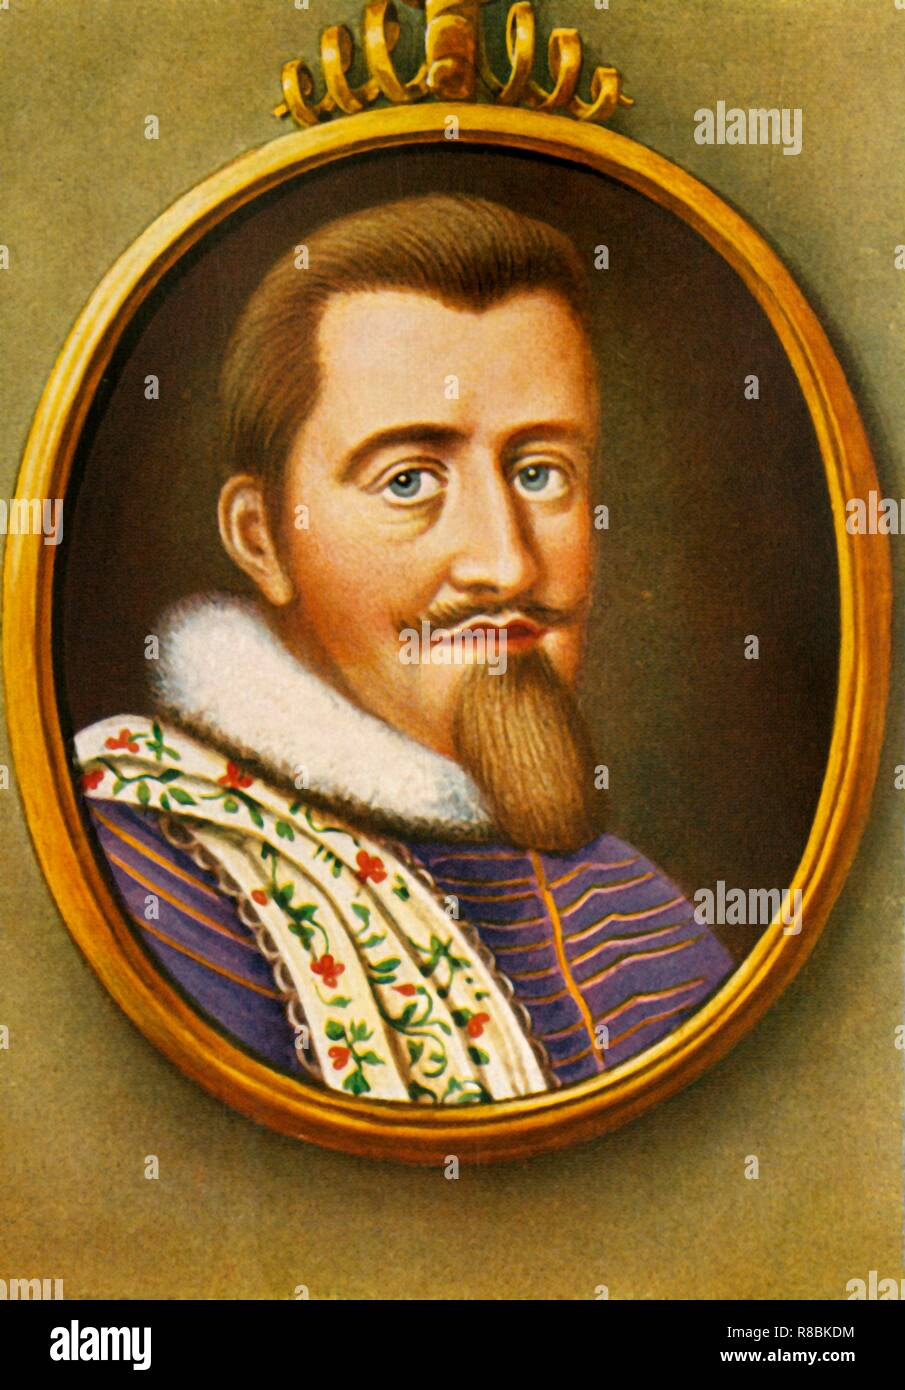 """'Christian IV', (1933). Portrait of Christian IV of Denmark (1577-1648), king of Denmark-Norway, Duke of Holstein and Schleswig. His 59-year reign is the longest of Danish monarchs, and of Scandinavian monarchies. After a miniature by Eric Utterhielm. From """"Gestalten Der Weltgeschichte"""", a book of cigarette-card portrait miniatures of figures in world history from the last four hundred years. [Germany, 1933] - Stock Image"""